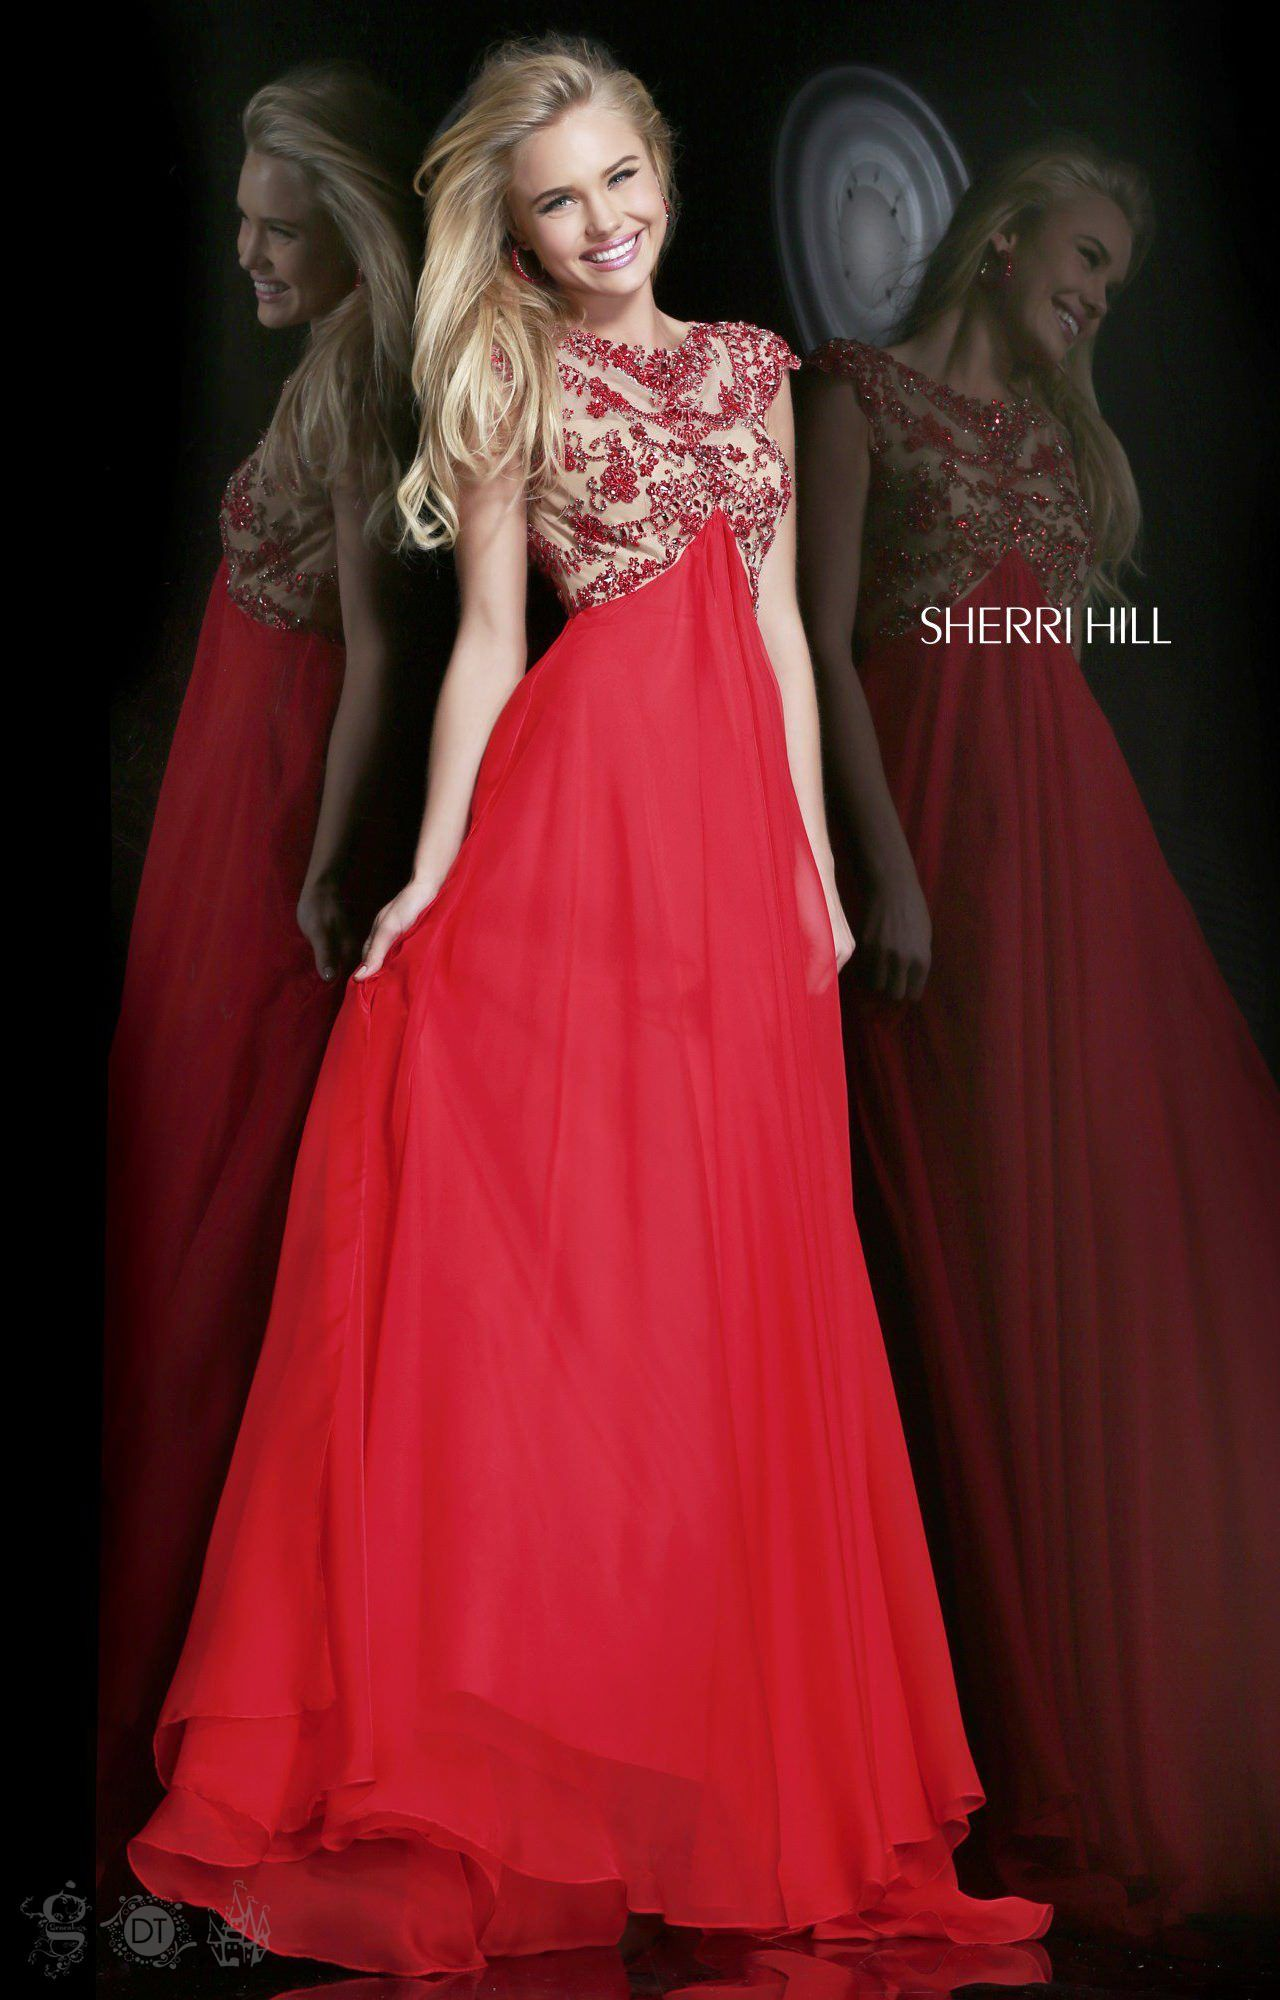 Sherri Hill 21321 | Gowns | Pinterest | Prom, Dress prom and Gowns